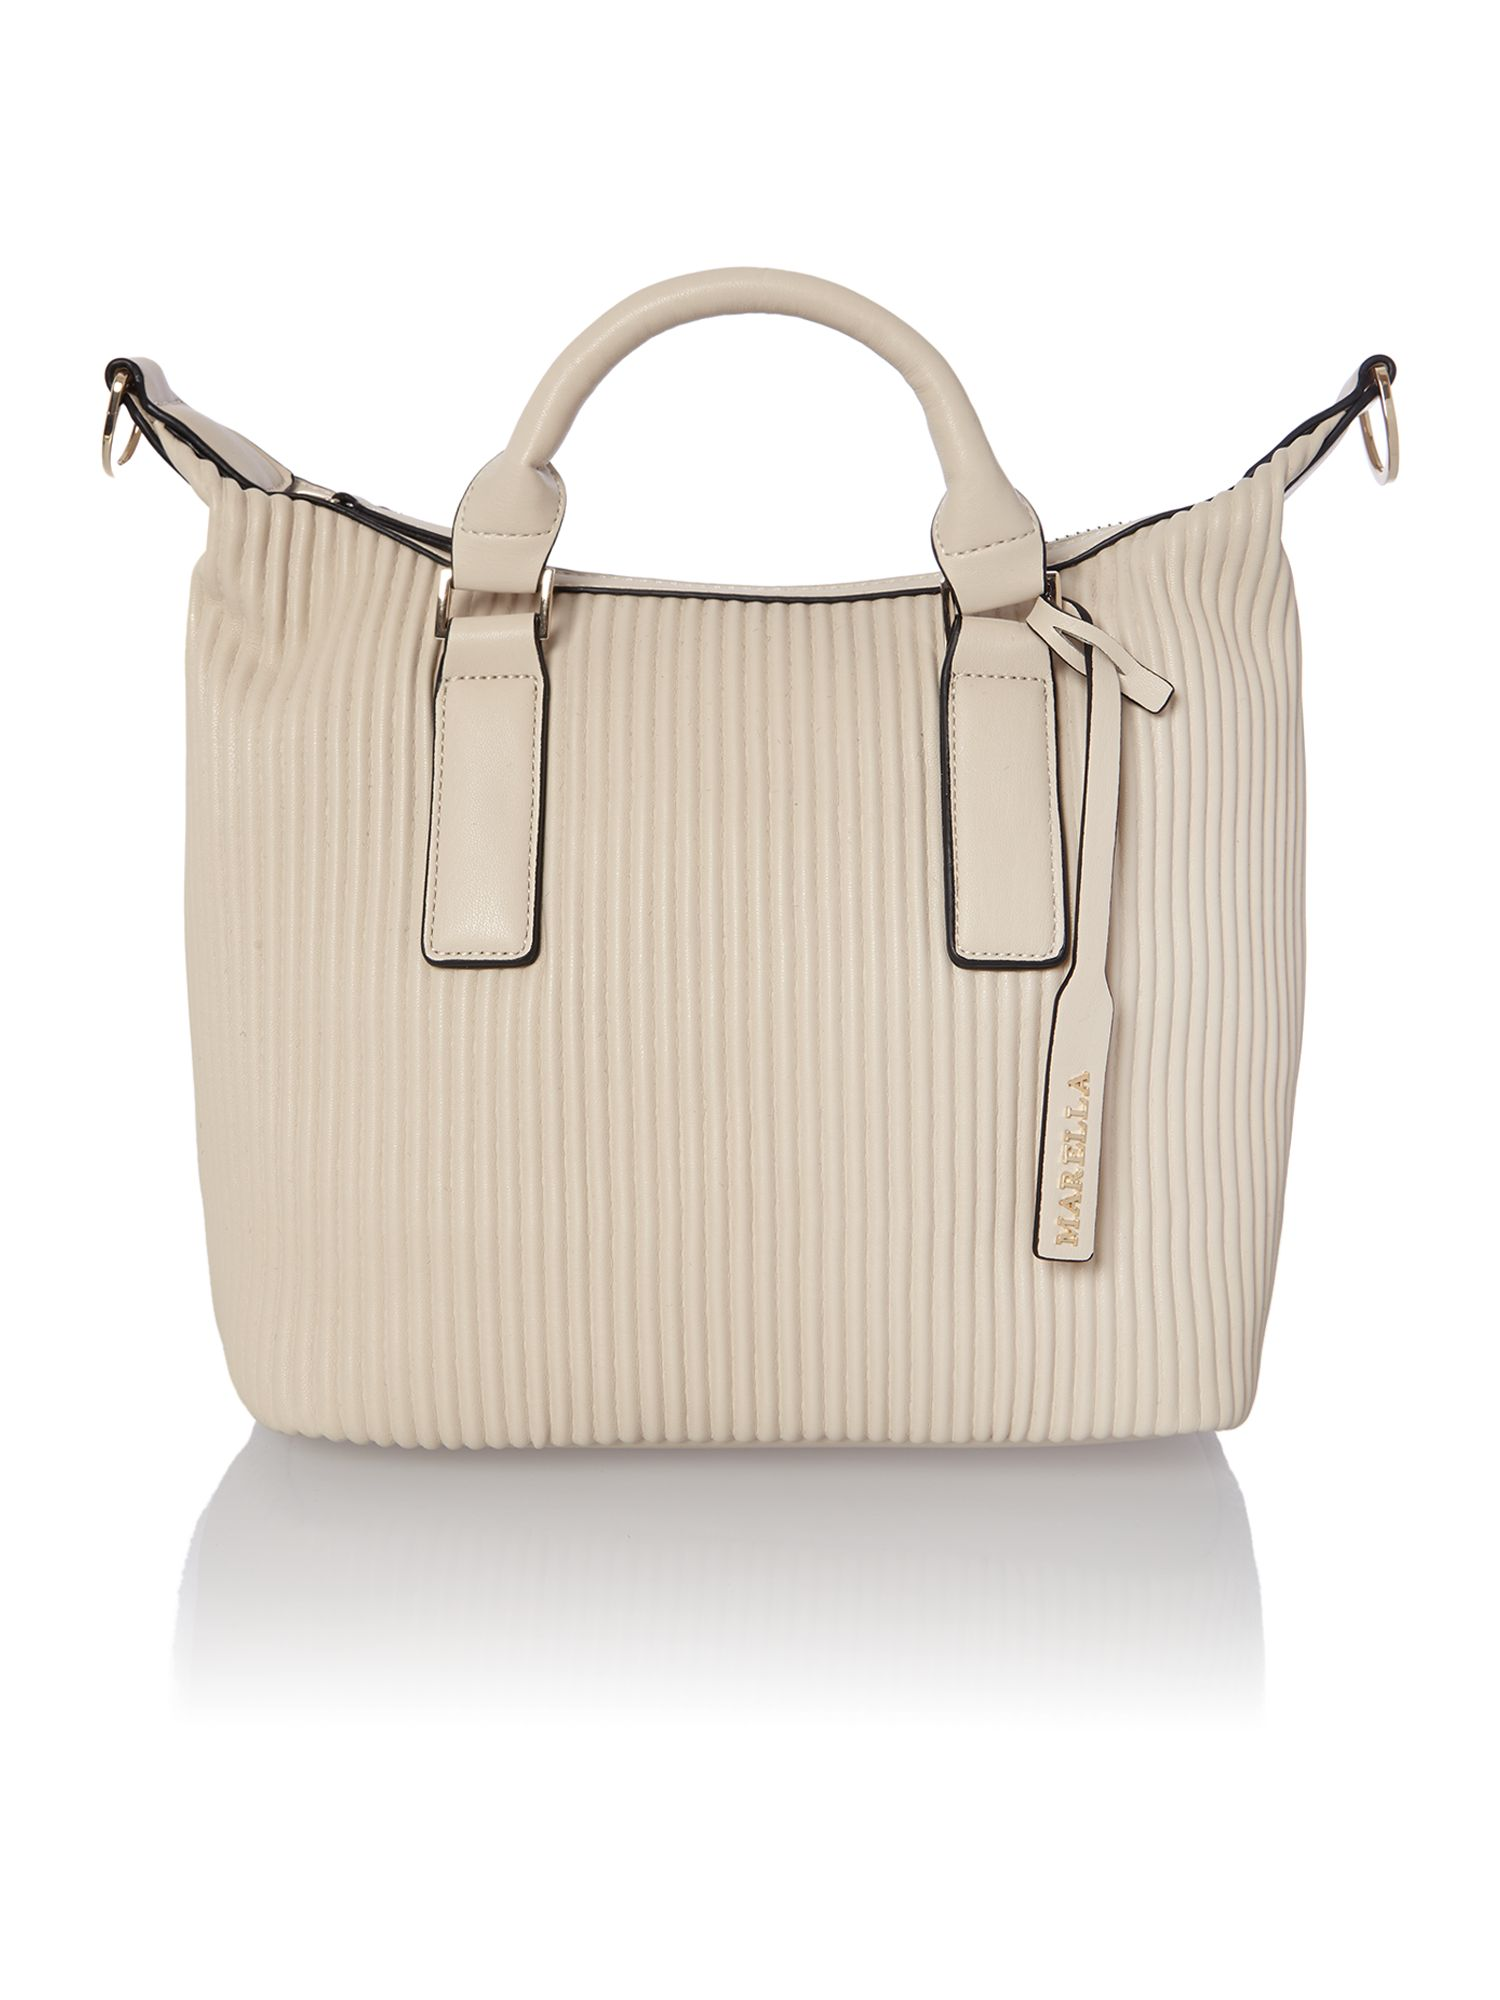 Neutral segreto tote bag